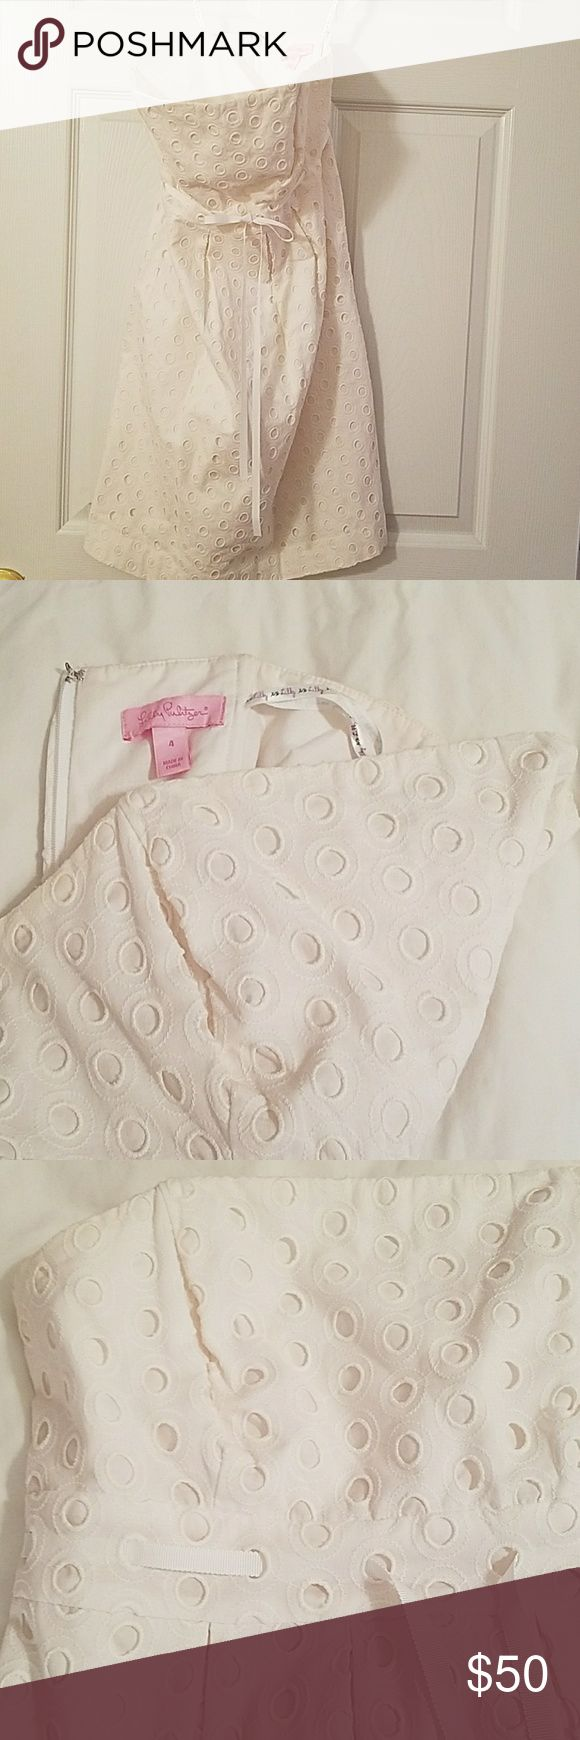 Lilly Pulitzer Dress White eyelet Lilly Pulitzer Dress - Size 4  Cotton dress fully lined, back zipper closure, boning in bodice  Small, faint stain on front and one of looks foe hanging the dress is torn   Smoke free home Lilly Pulitzer Dresses Strapless